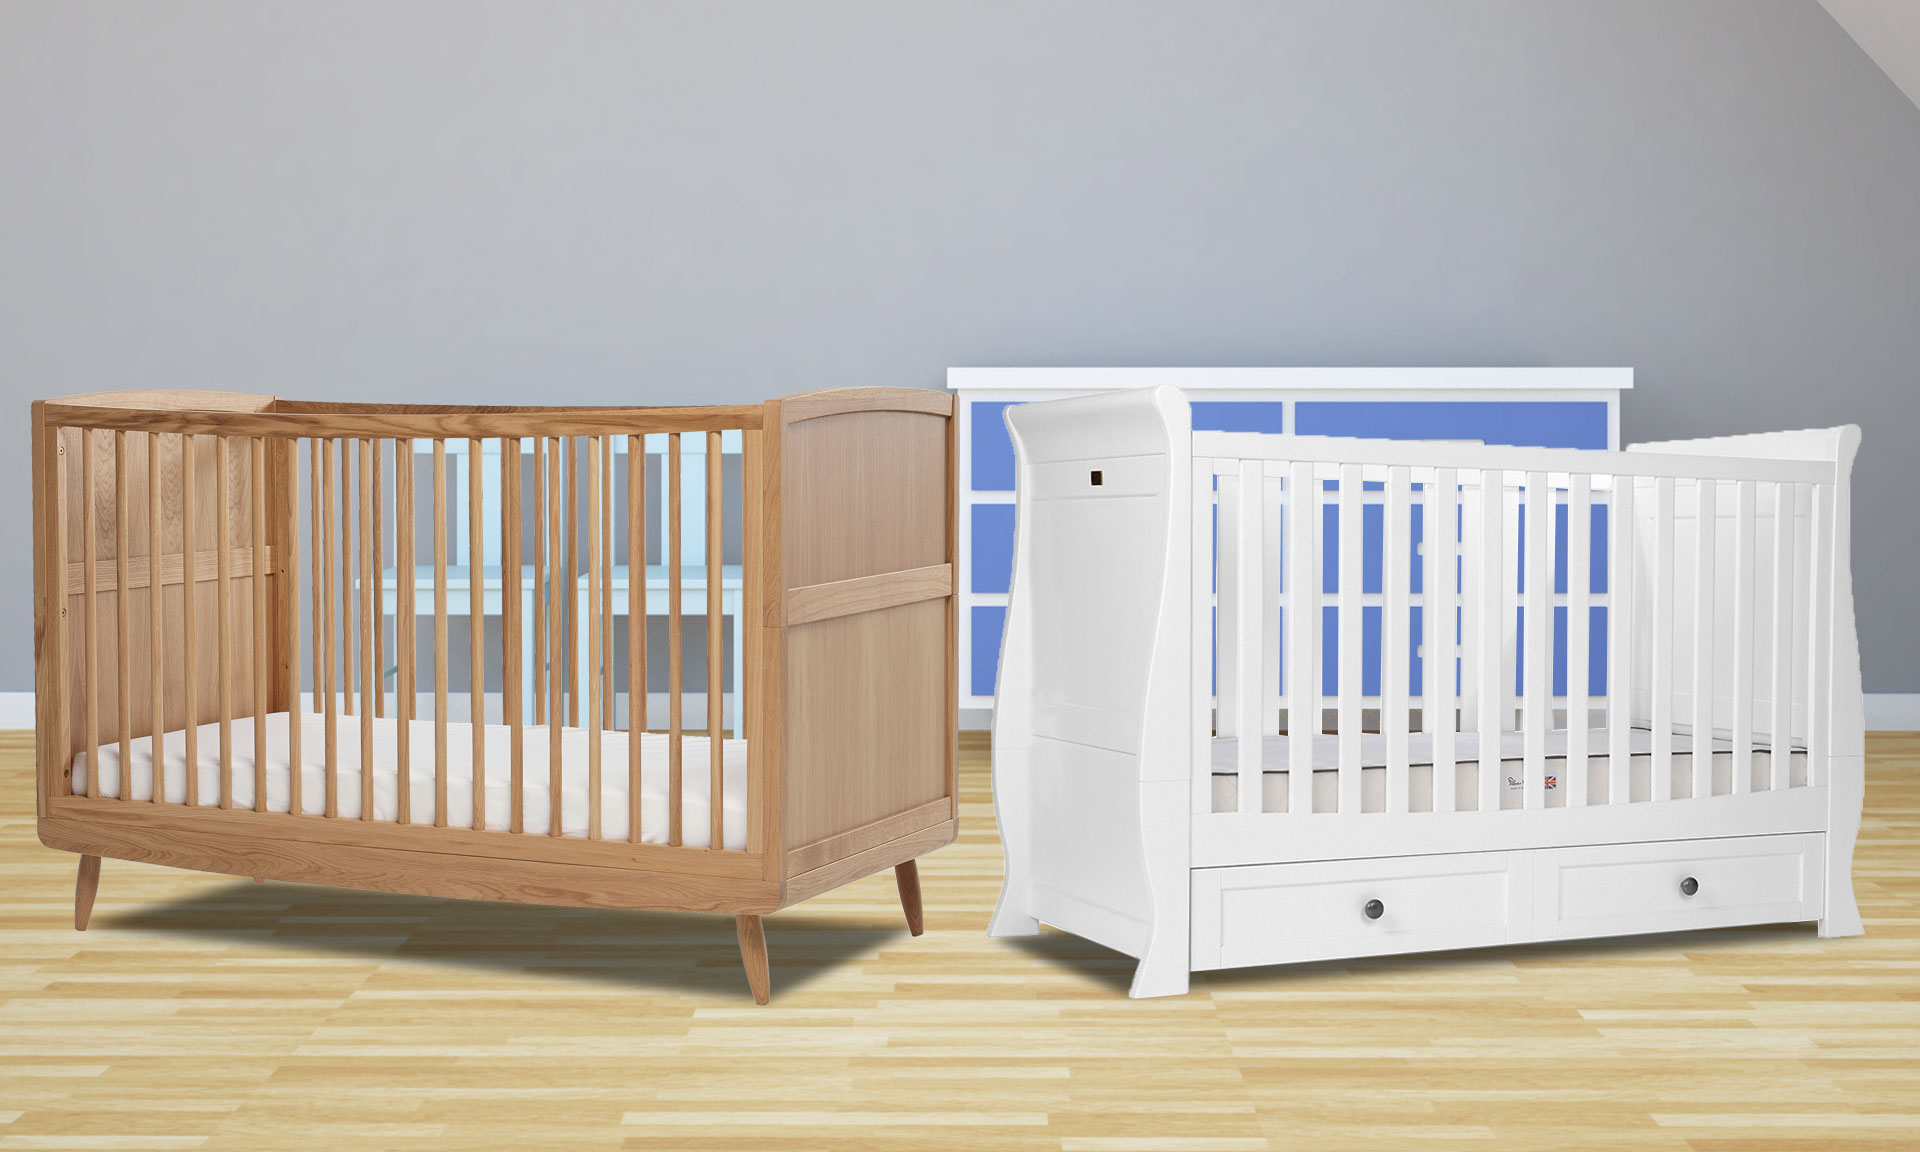 Cot Bed Buy One Get One Free Nursery Decoration & Furniture Baby